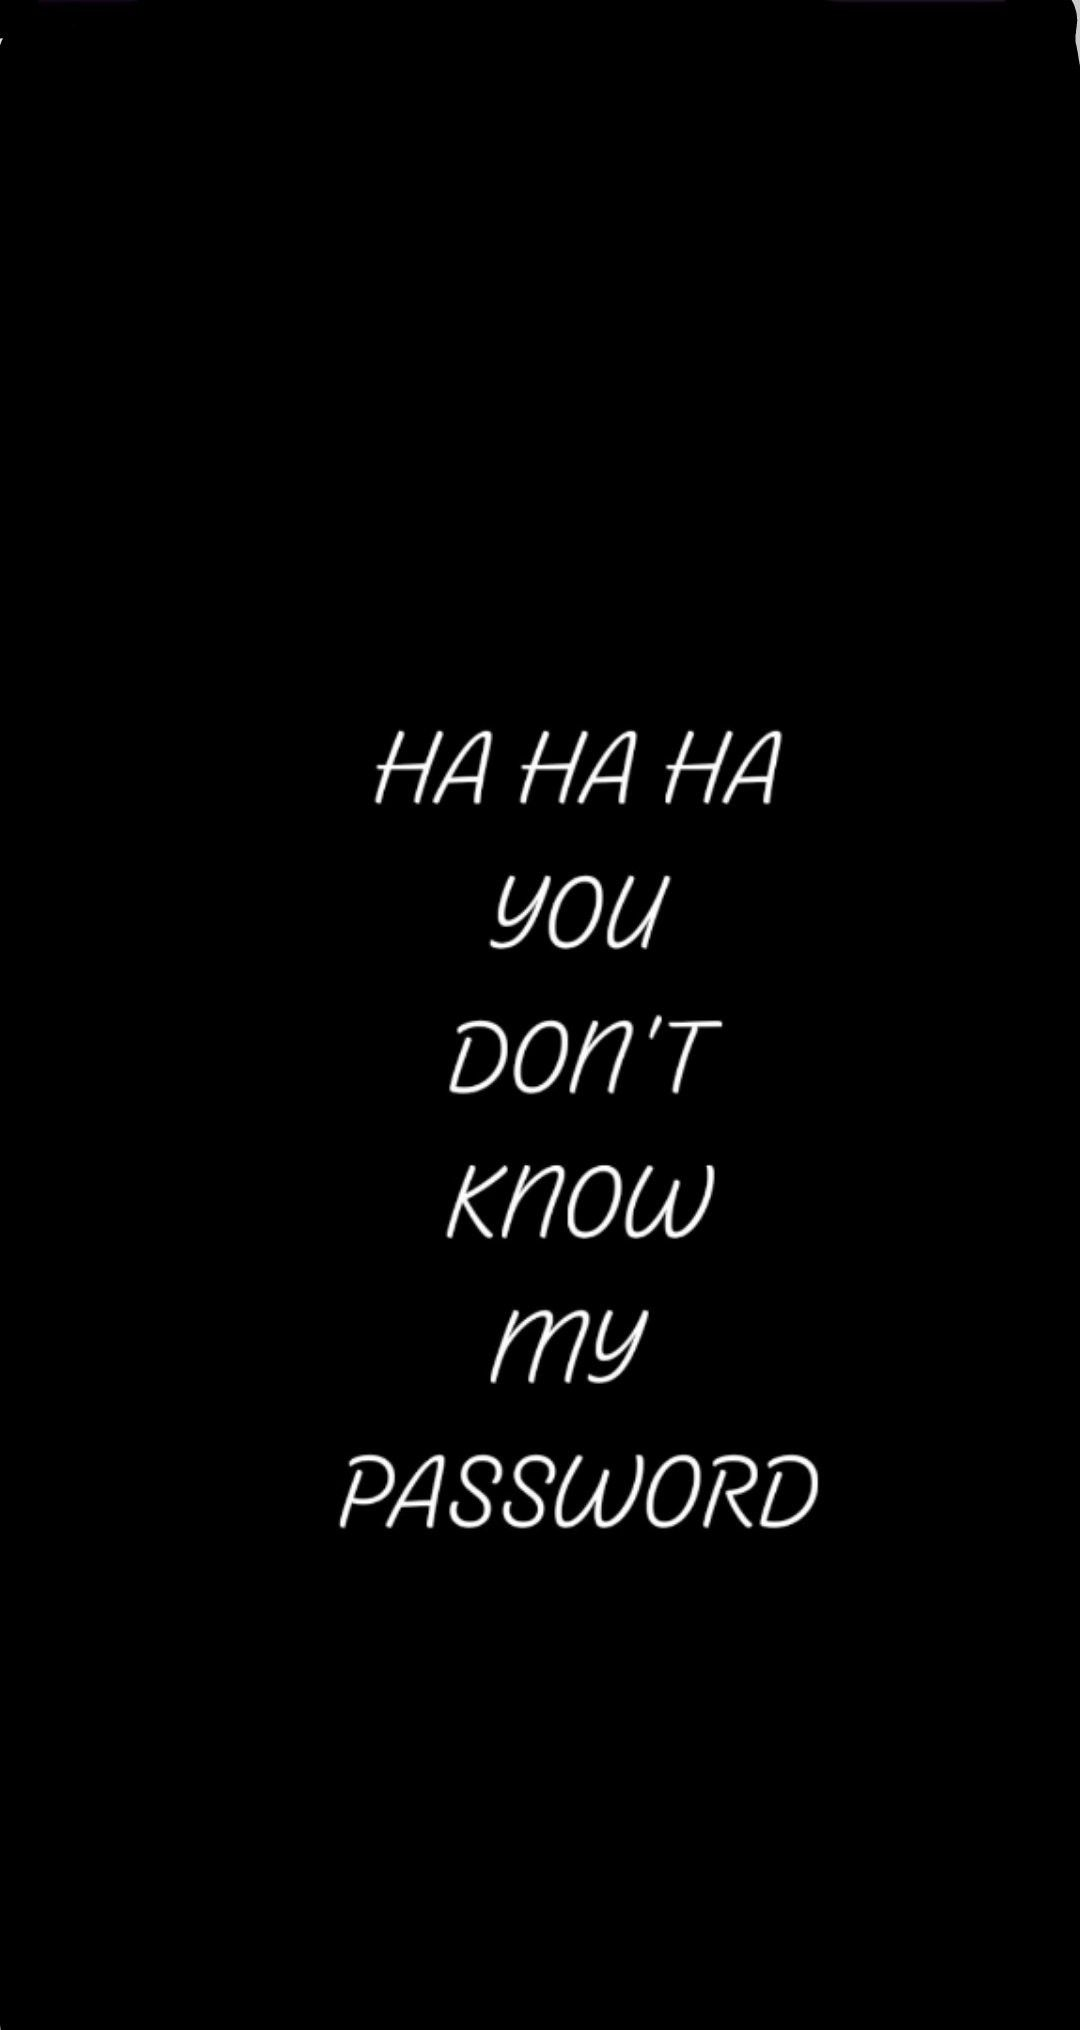 You Don T Know My Password Wallpaper Ponsel Hitam Wallpaper Layar Kunci Iphone Wallpaper Layar